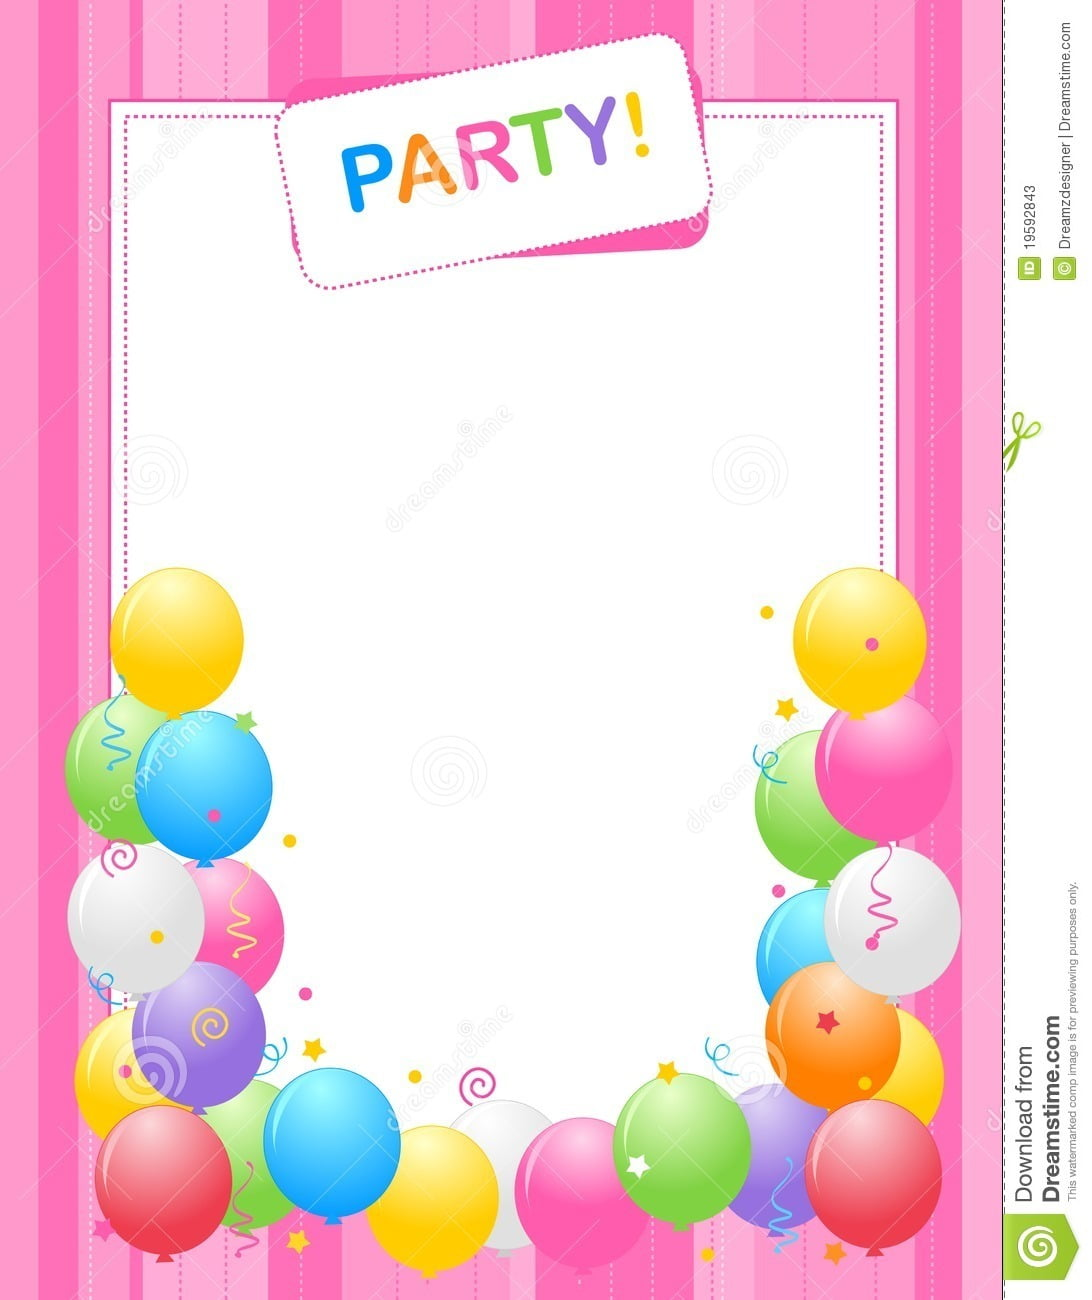 Party Invitation Background Stock Vector